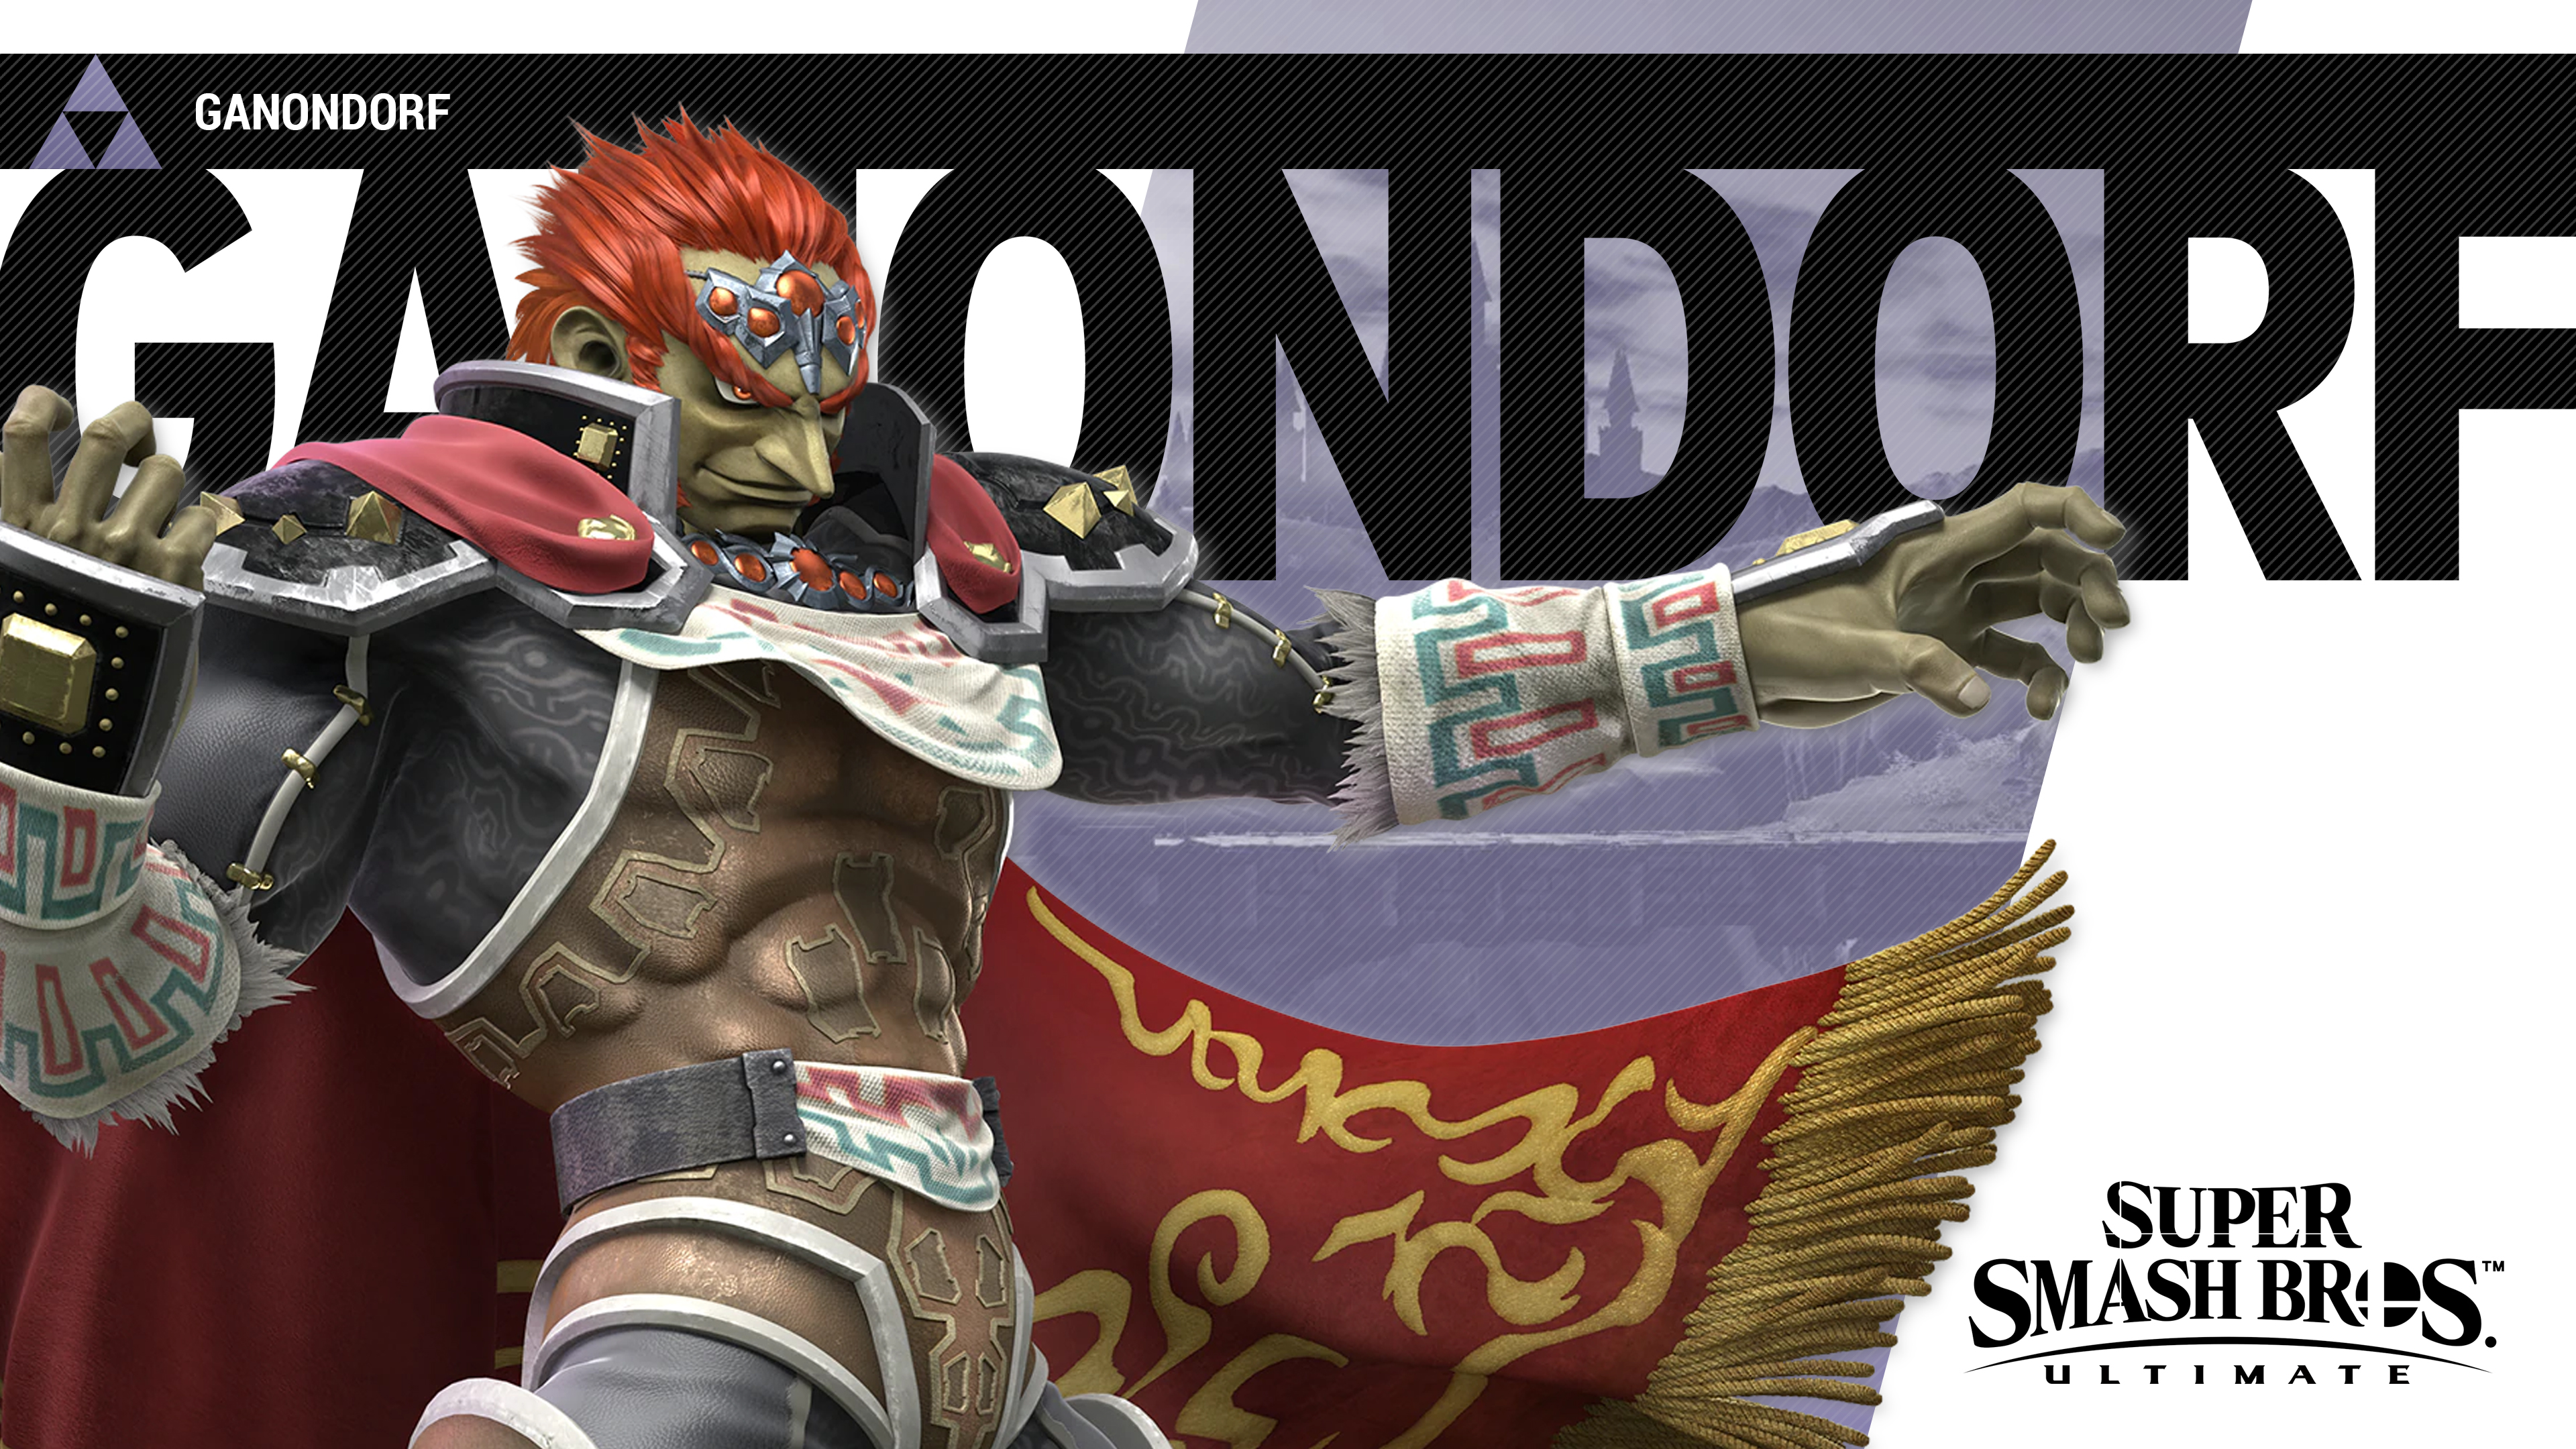 Super Smash Bros Ultimate Ganondorf Wallpapers Cat With